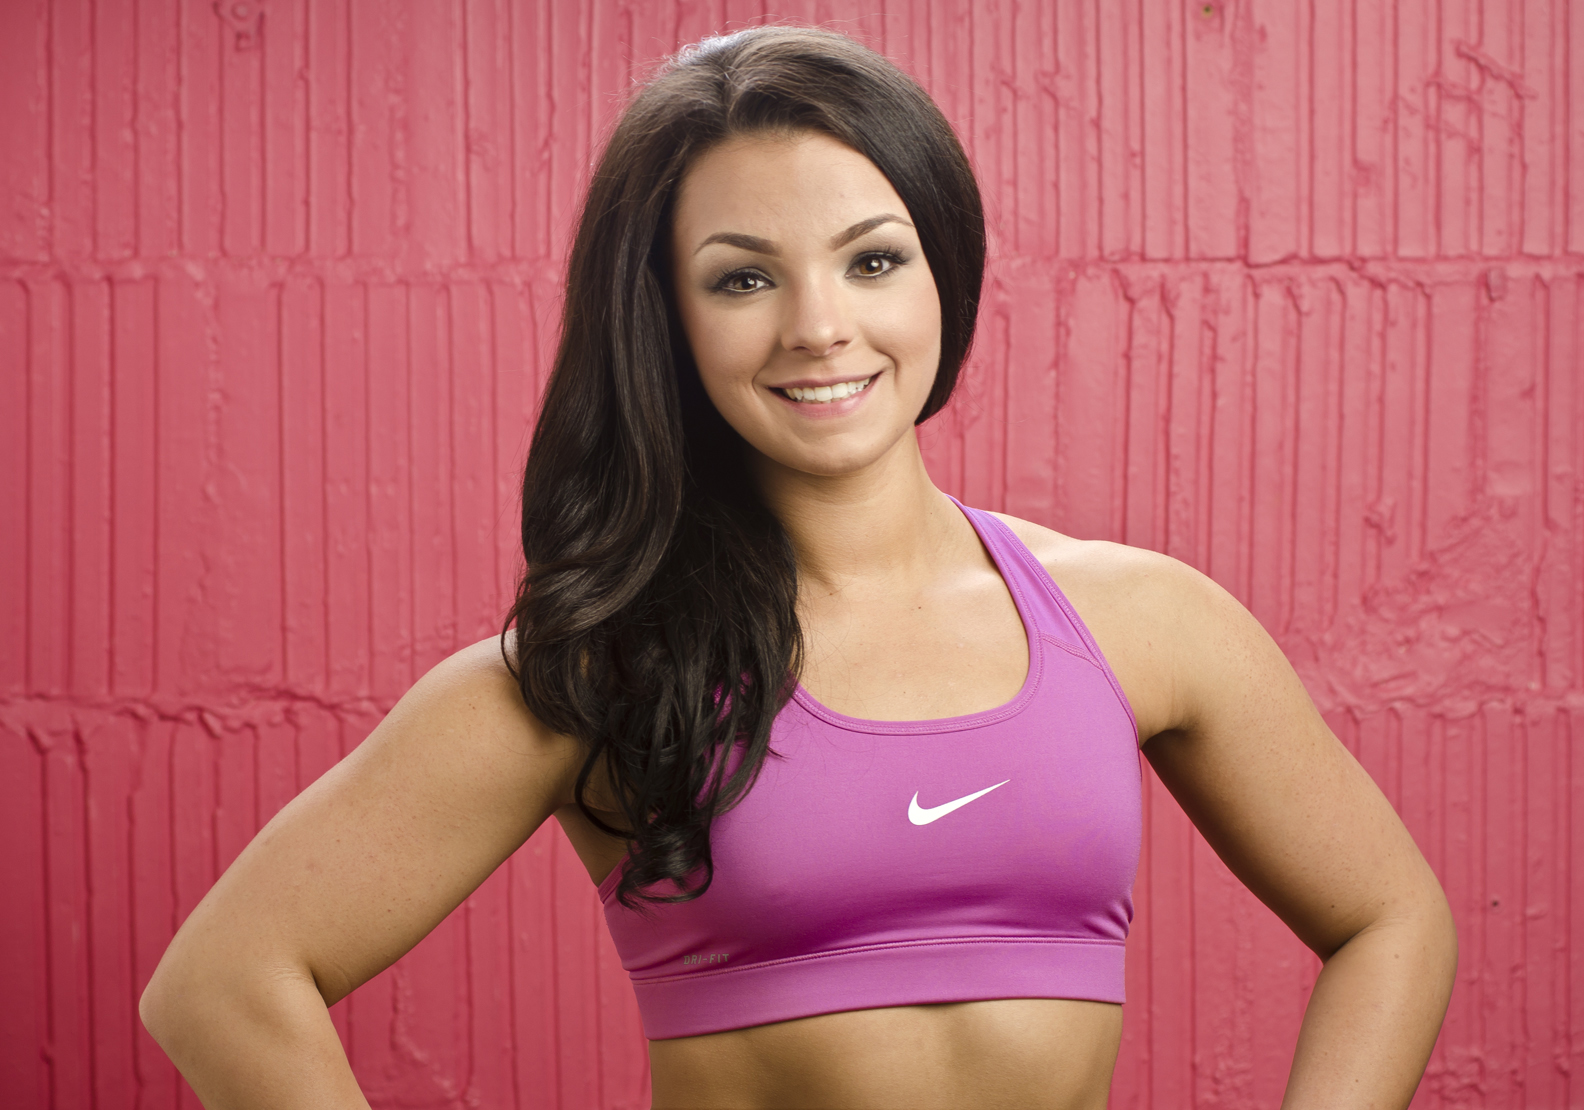 beautiful athletic girl in sports bra high school photo